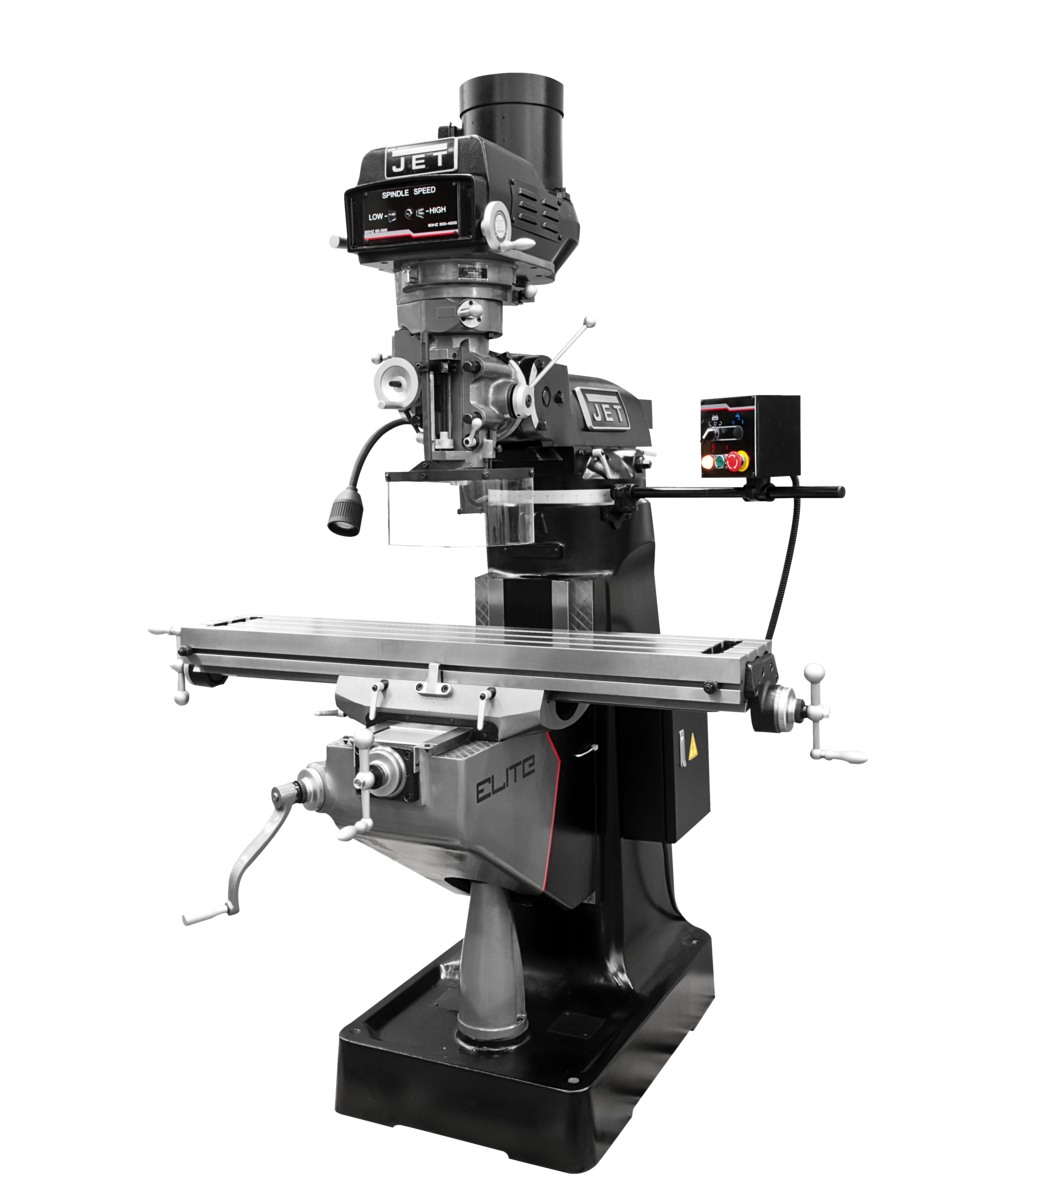 ETM-949 Mill with 3-Axis Newall DP700 (Knee) DRO and X, Y-Axis JET Powerfeeds